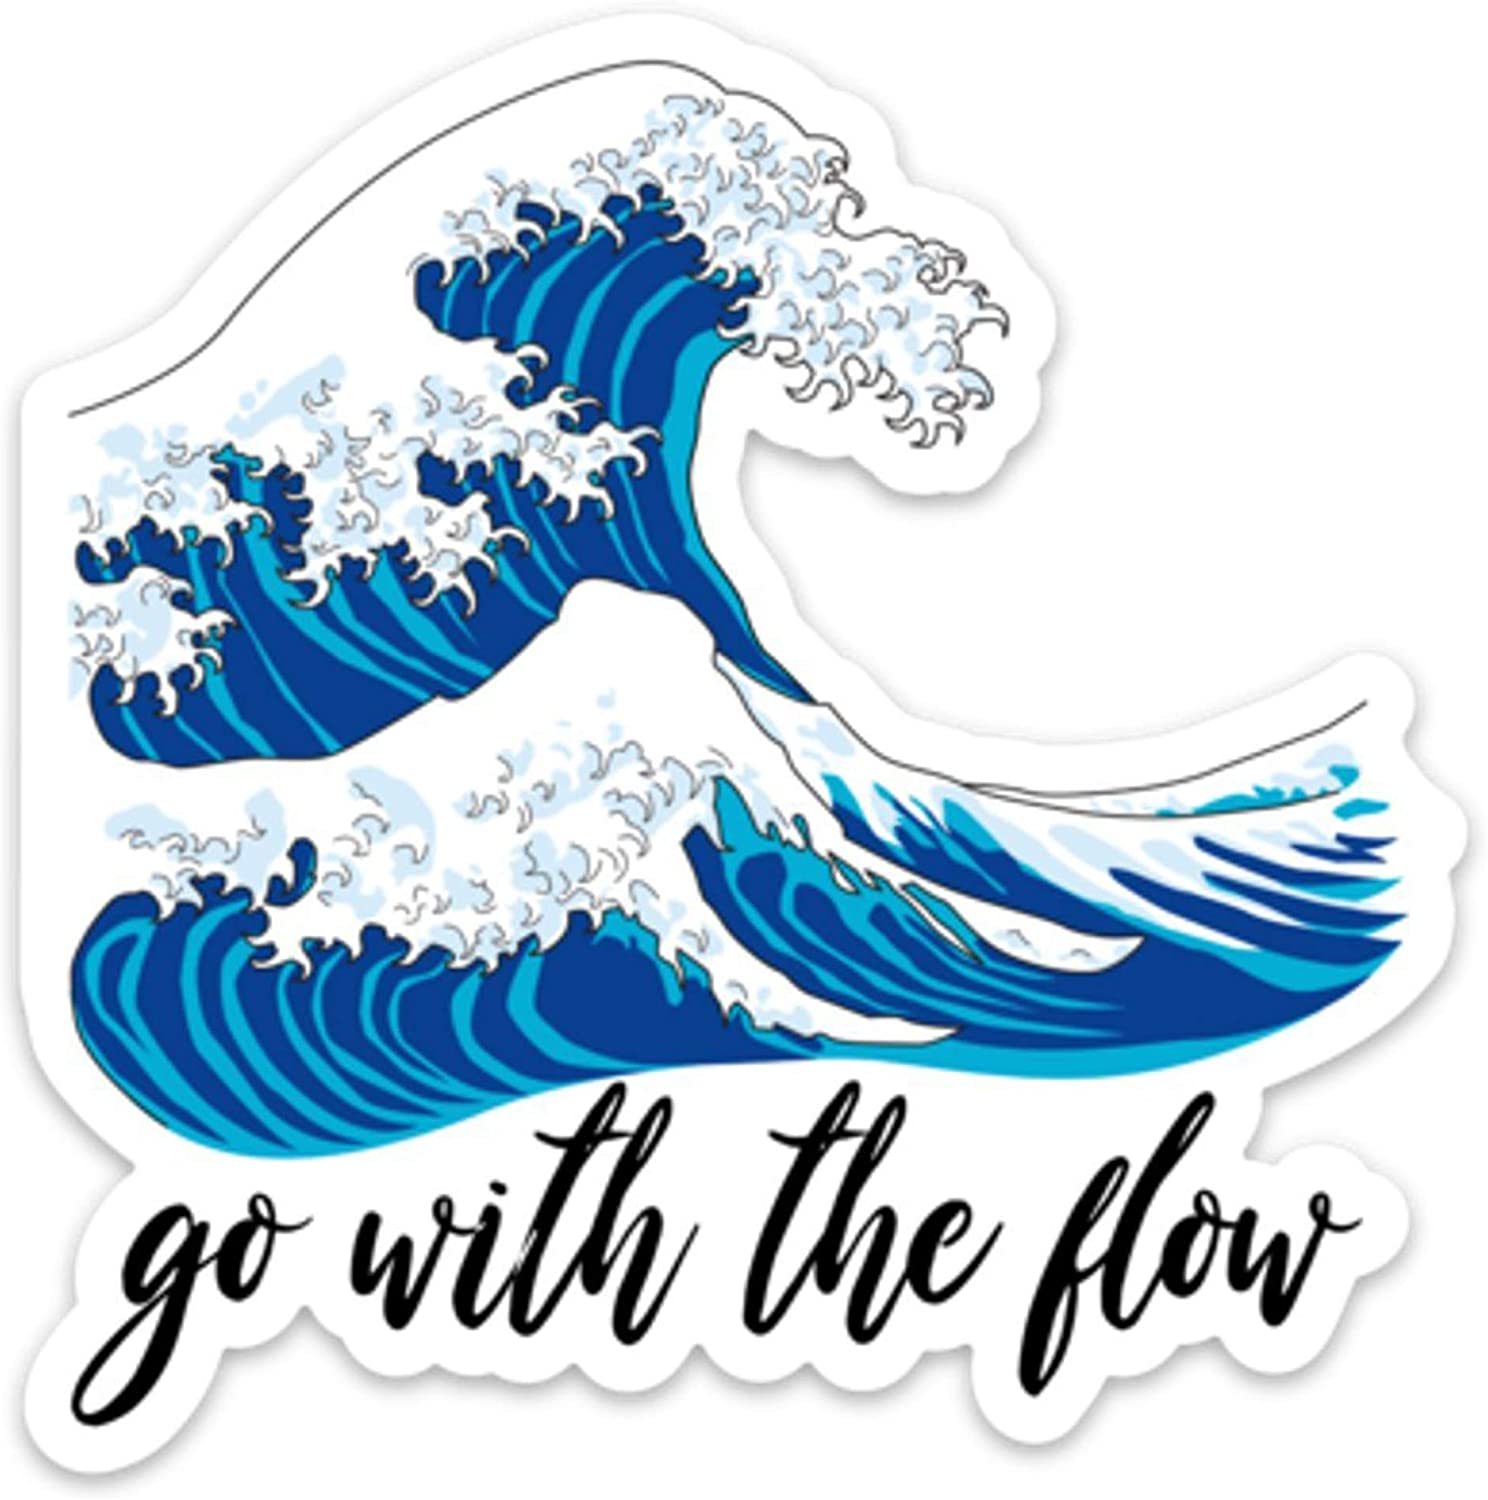 "Stickeroonie Go with The Flow Japanese Kanagawa Wave Vinyl Sticker, Cool Weather & Water Resistant Sticker, 4"" x 4"" Size"